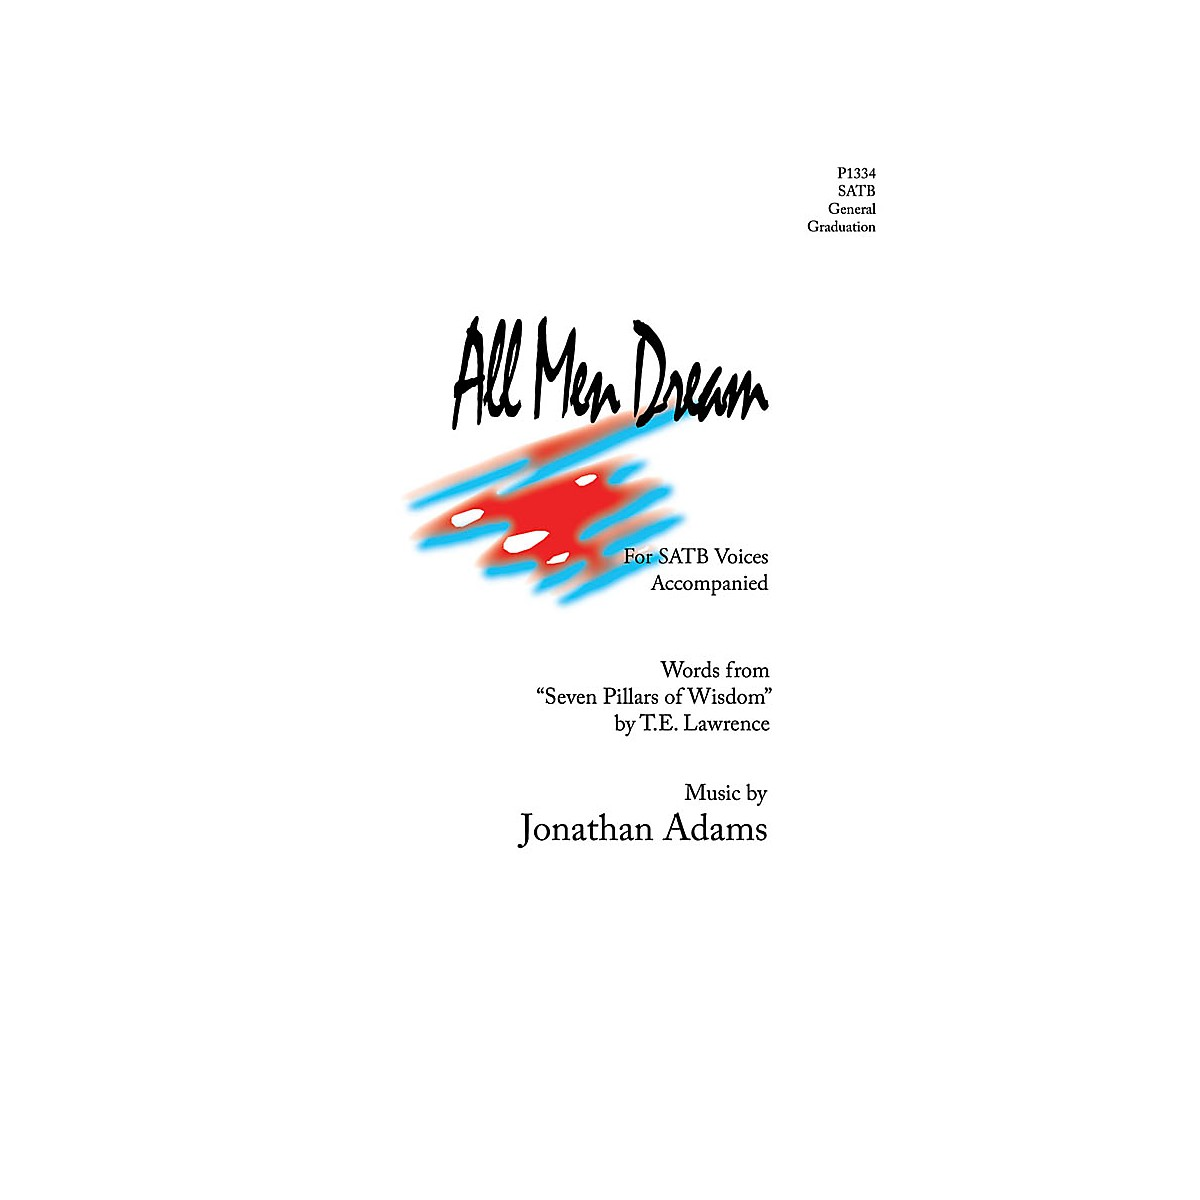 Pavane All Men Dream SATB composed by Jonathan Adams